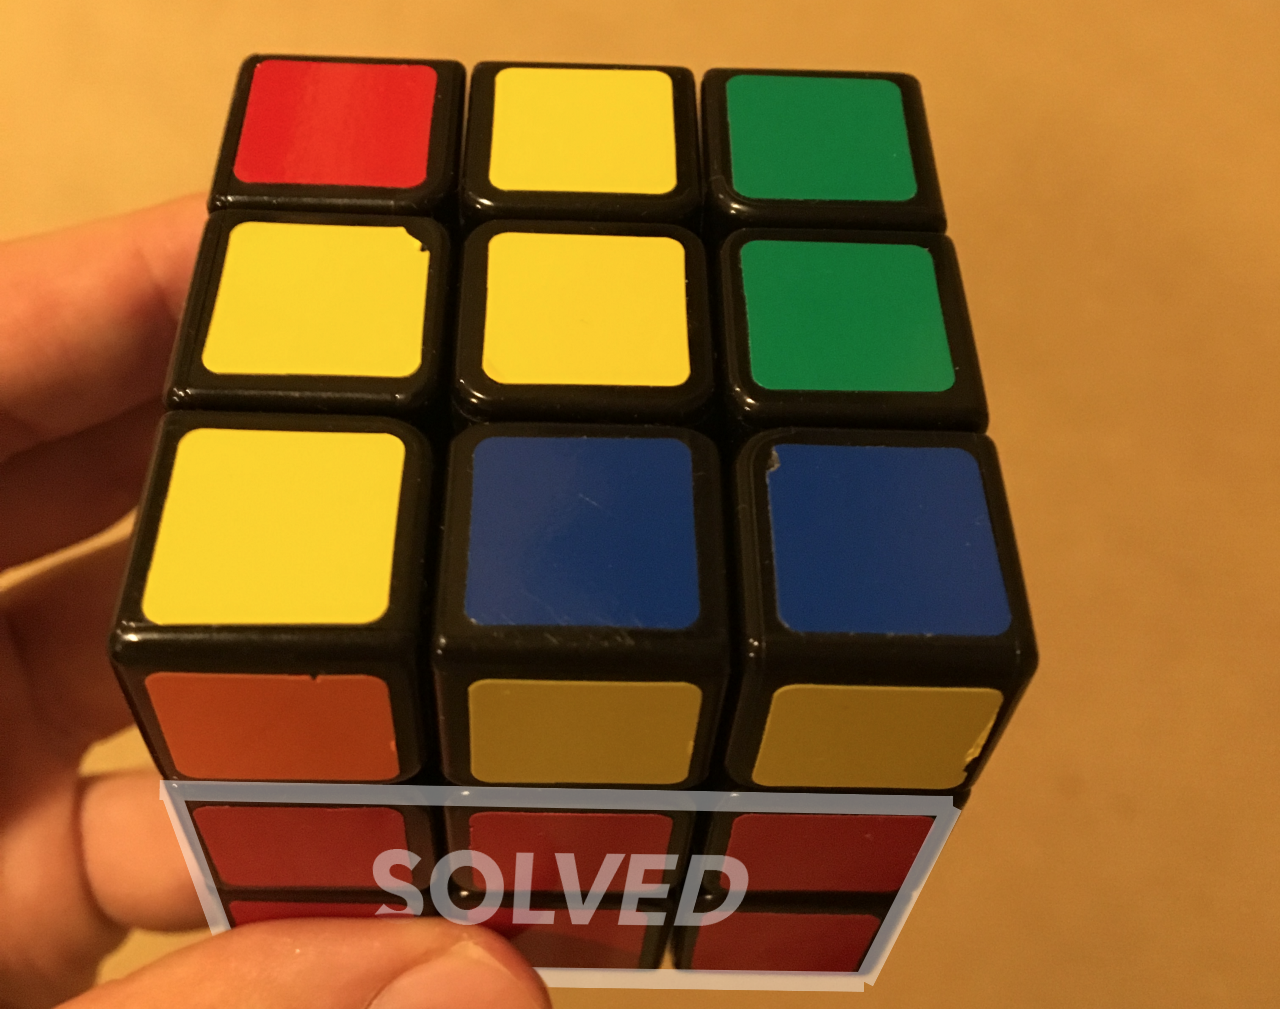 My month-long quest to solve a Rubik's Cube in under 20 seconds